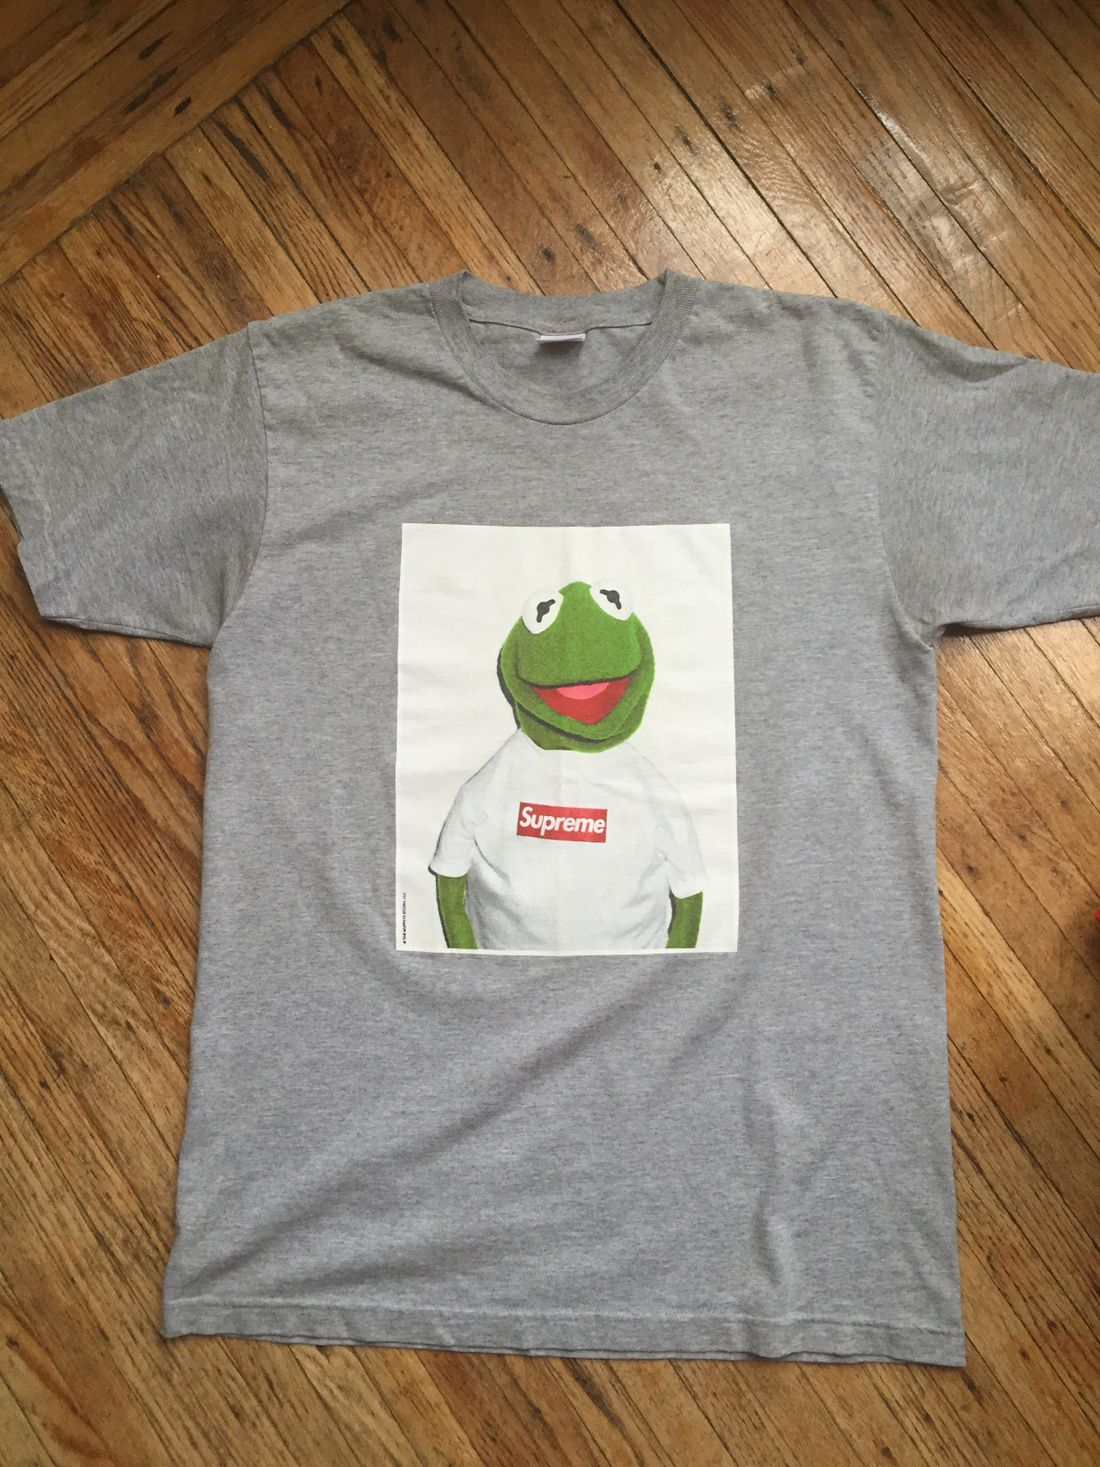 961968c8546d A T-shirt featuring Kermit the Frog wearing a Supreme box logo T-shirt